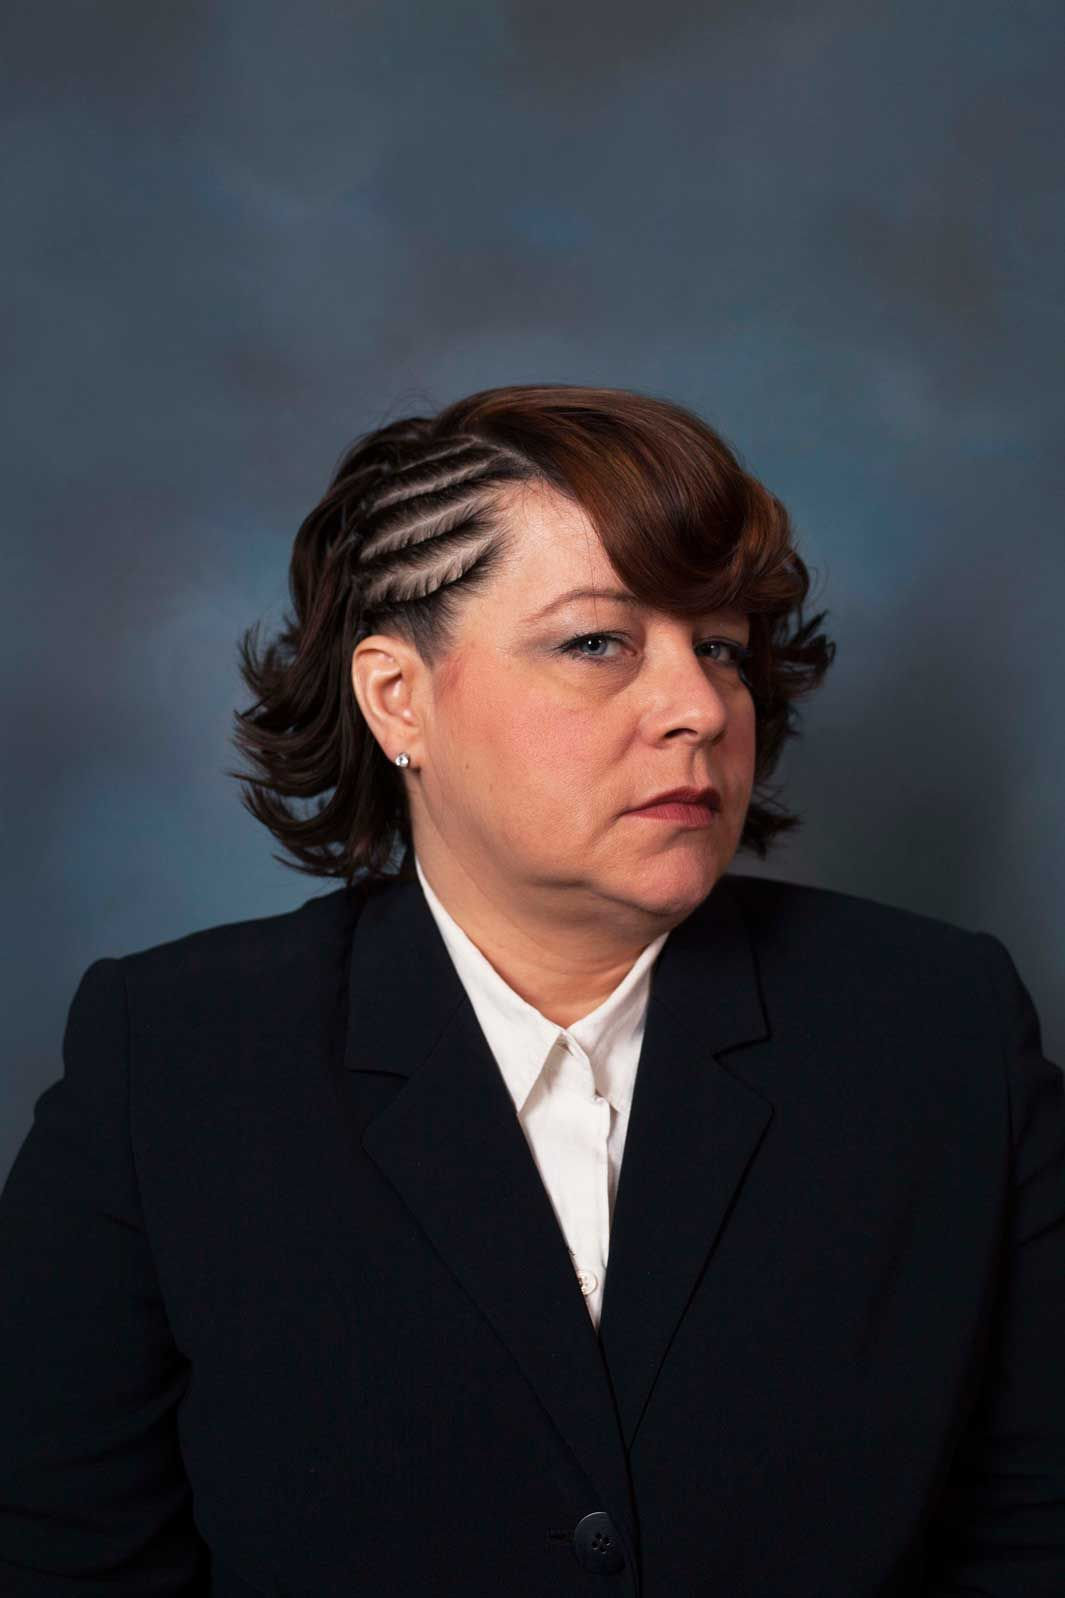 Corporate Portraits Of White Women With Black Hairstyles